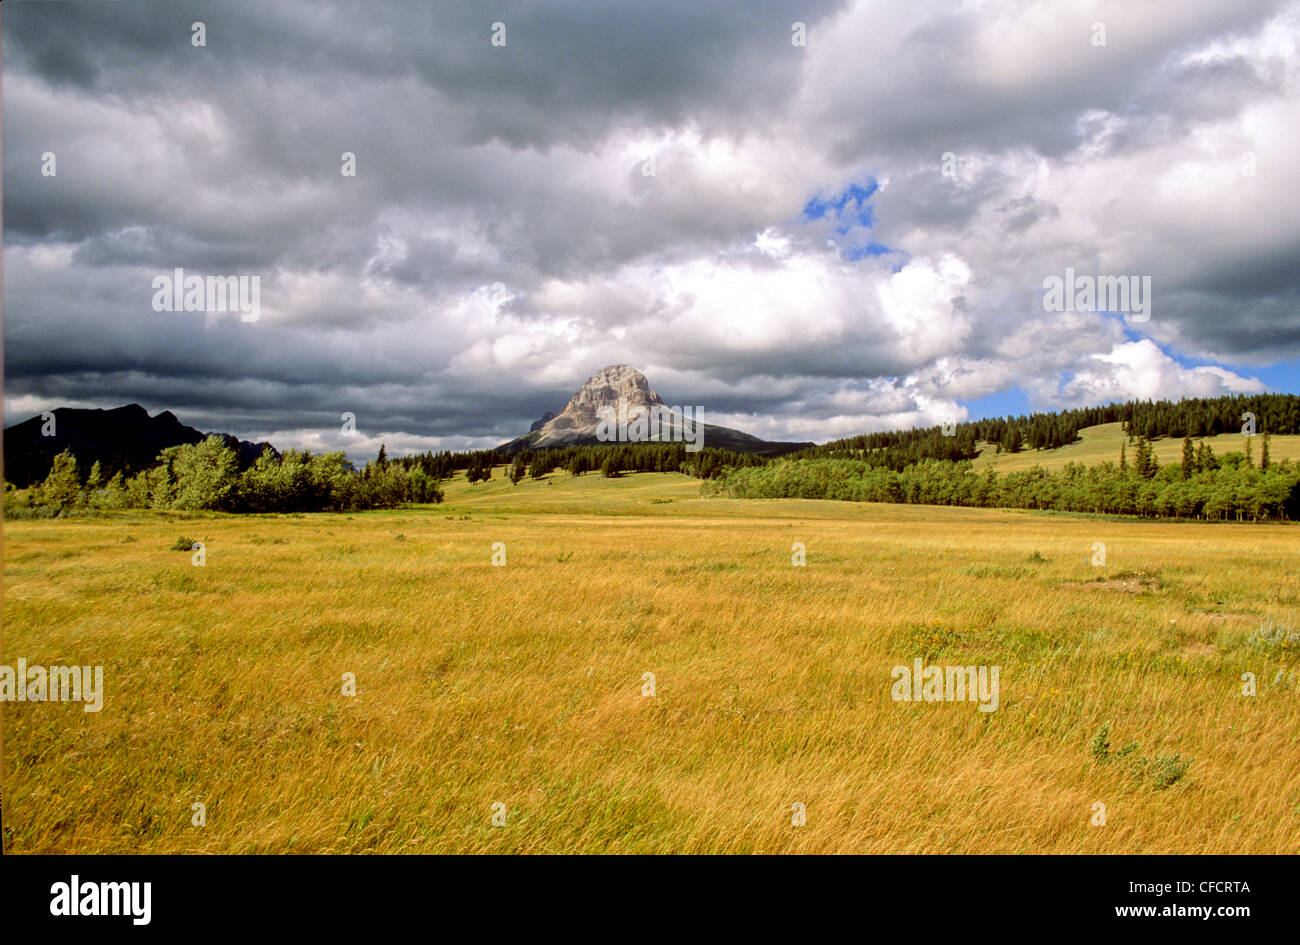 Clouds moving over mountains, Crowsnest Pass, Alberta, Canada - Stock Image